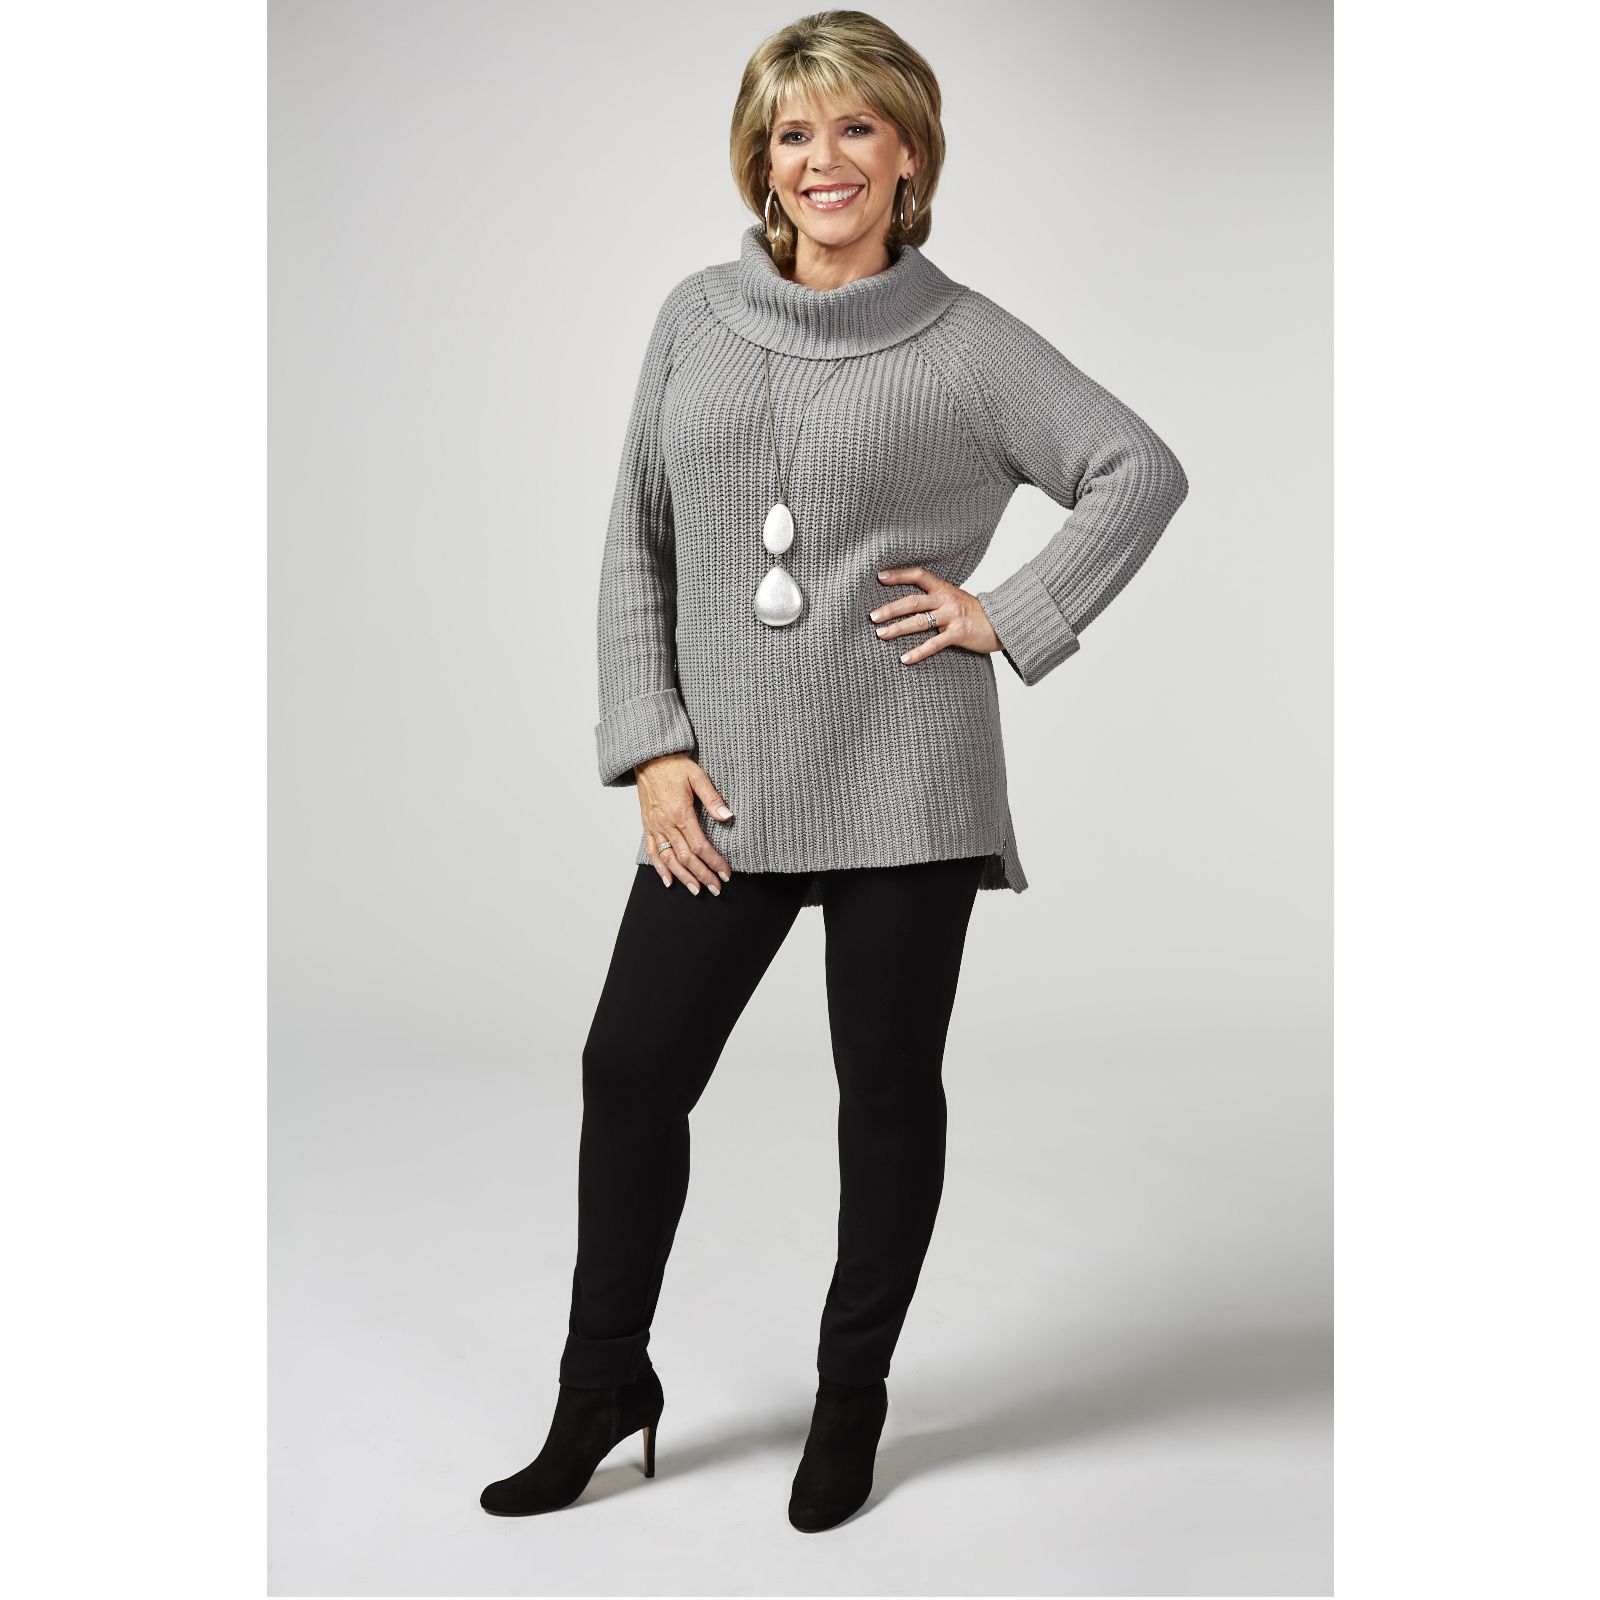 654e98d4e07076 Ruth Langsford Chunky Knit Roll Neck Sweater with Side Zip Detail - QVC UK